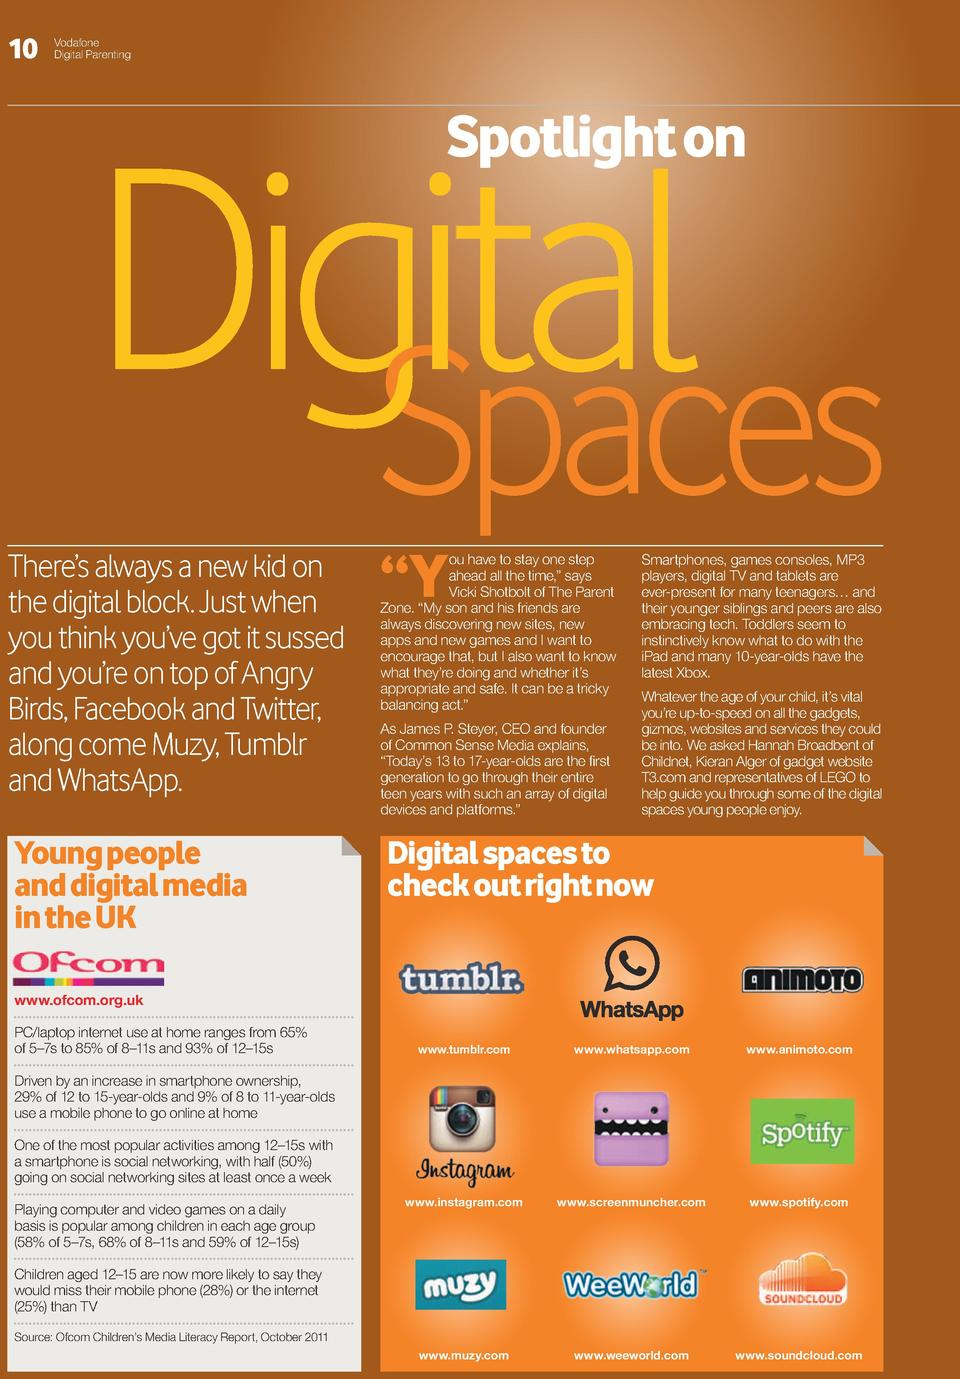 10  Vodafone Digital Parenting  Spotlight on   Digital Spaces There   s always a new kid on the digital block. Just when y...